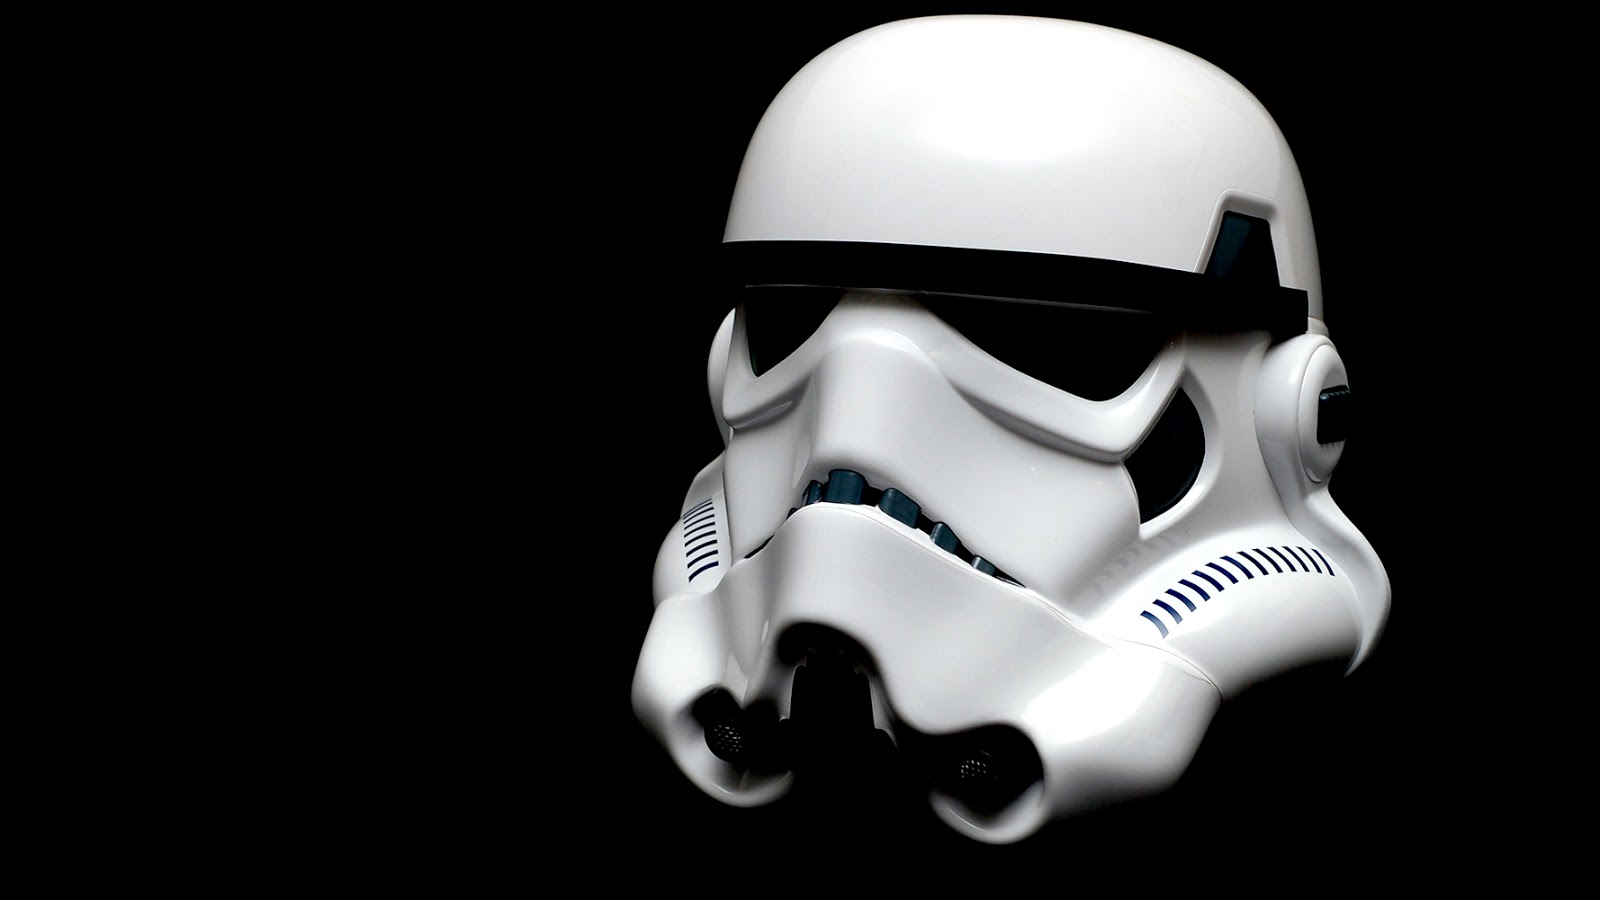 central wallpaper stormtroopers star wars hd wallpapers